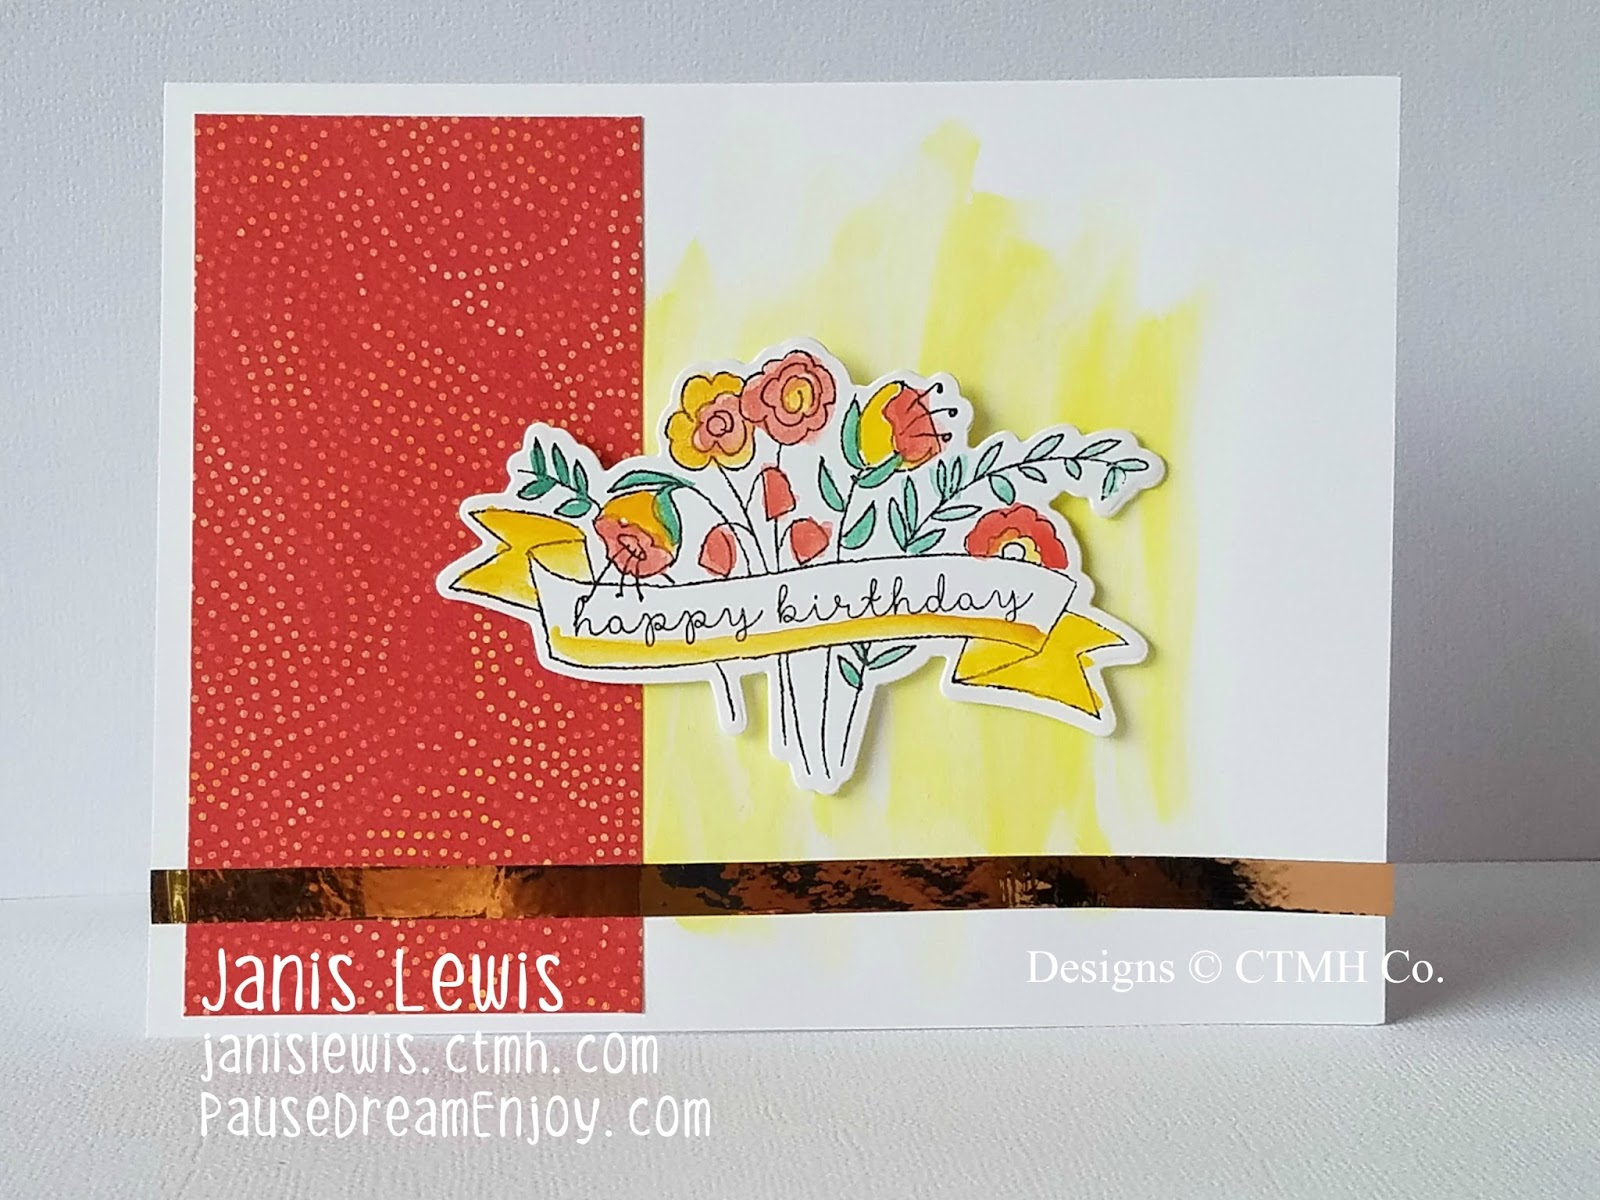 Pause Dream Enjoy CTMH Watercolored Happy Birthday Cards